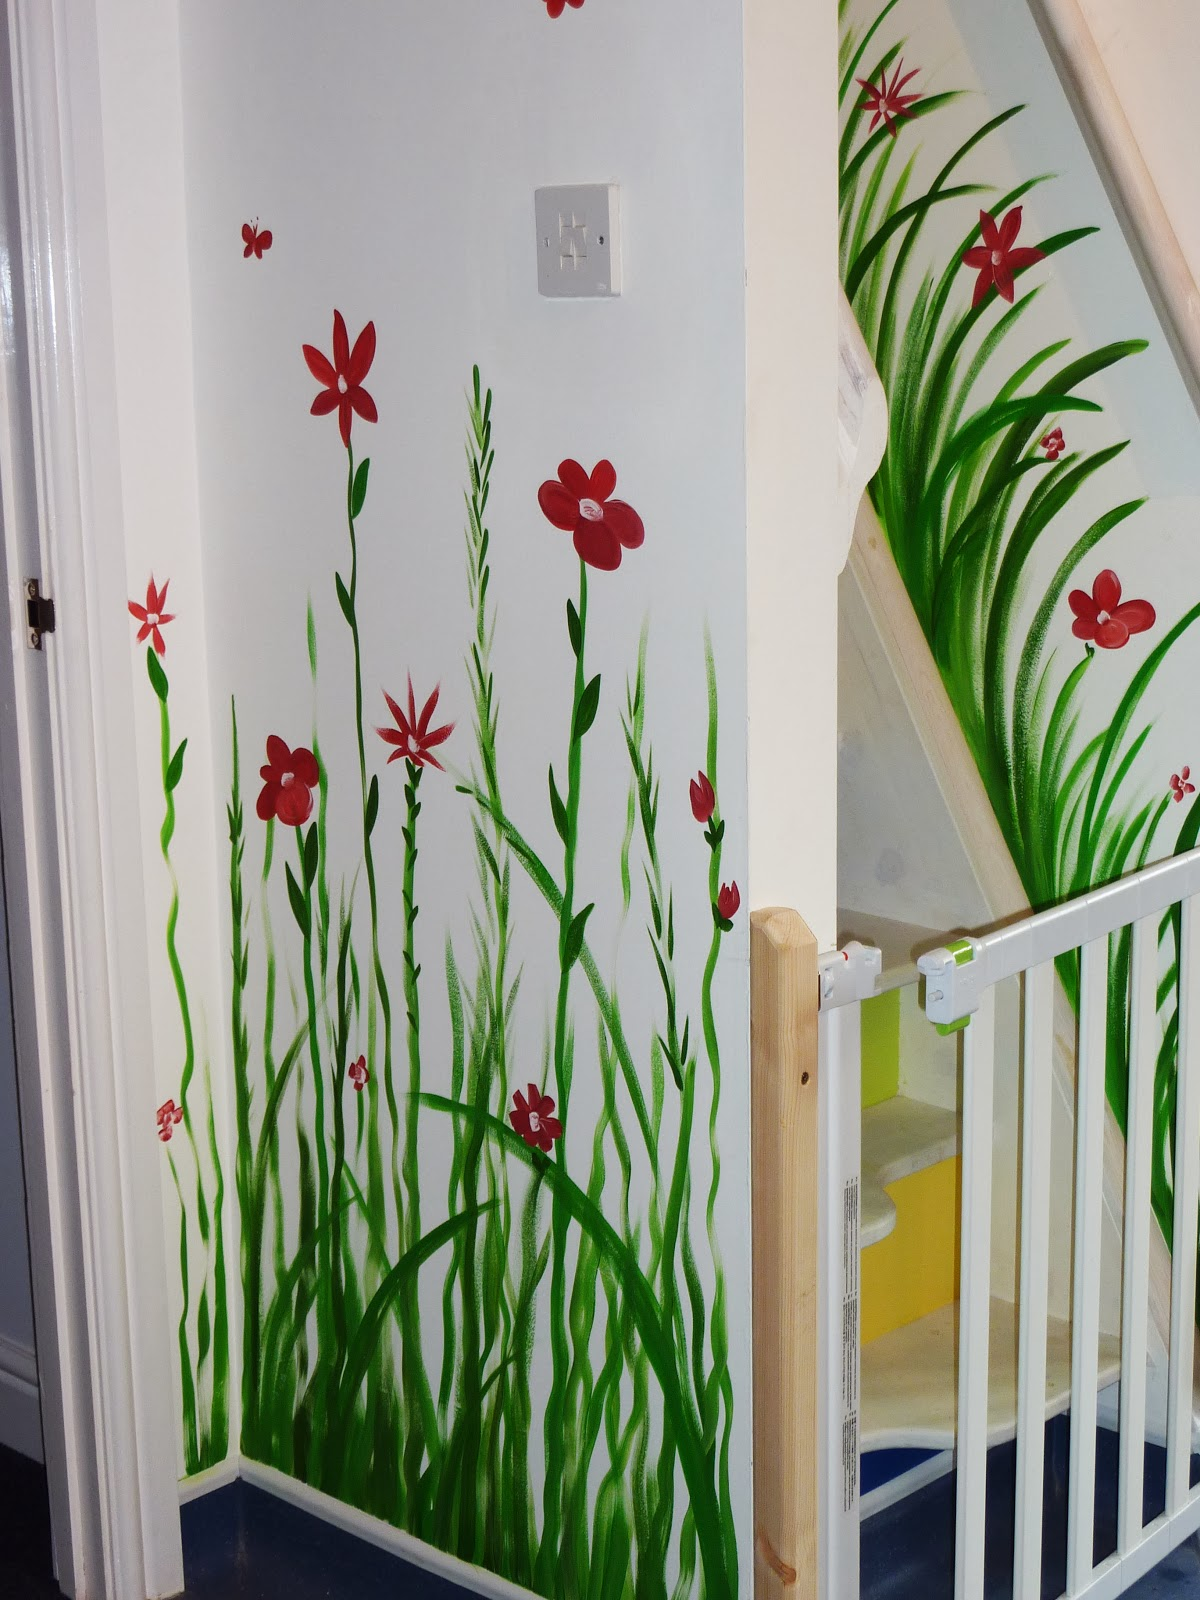 Joanna Perry - Top Mural Artist, Hand Painting Murals ...